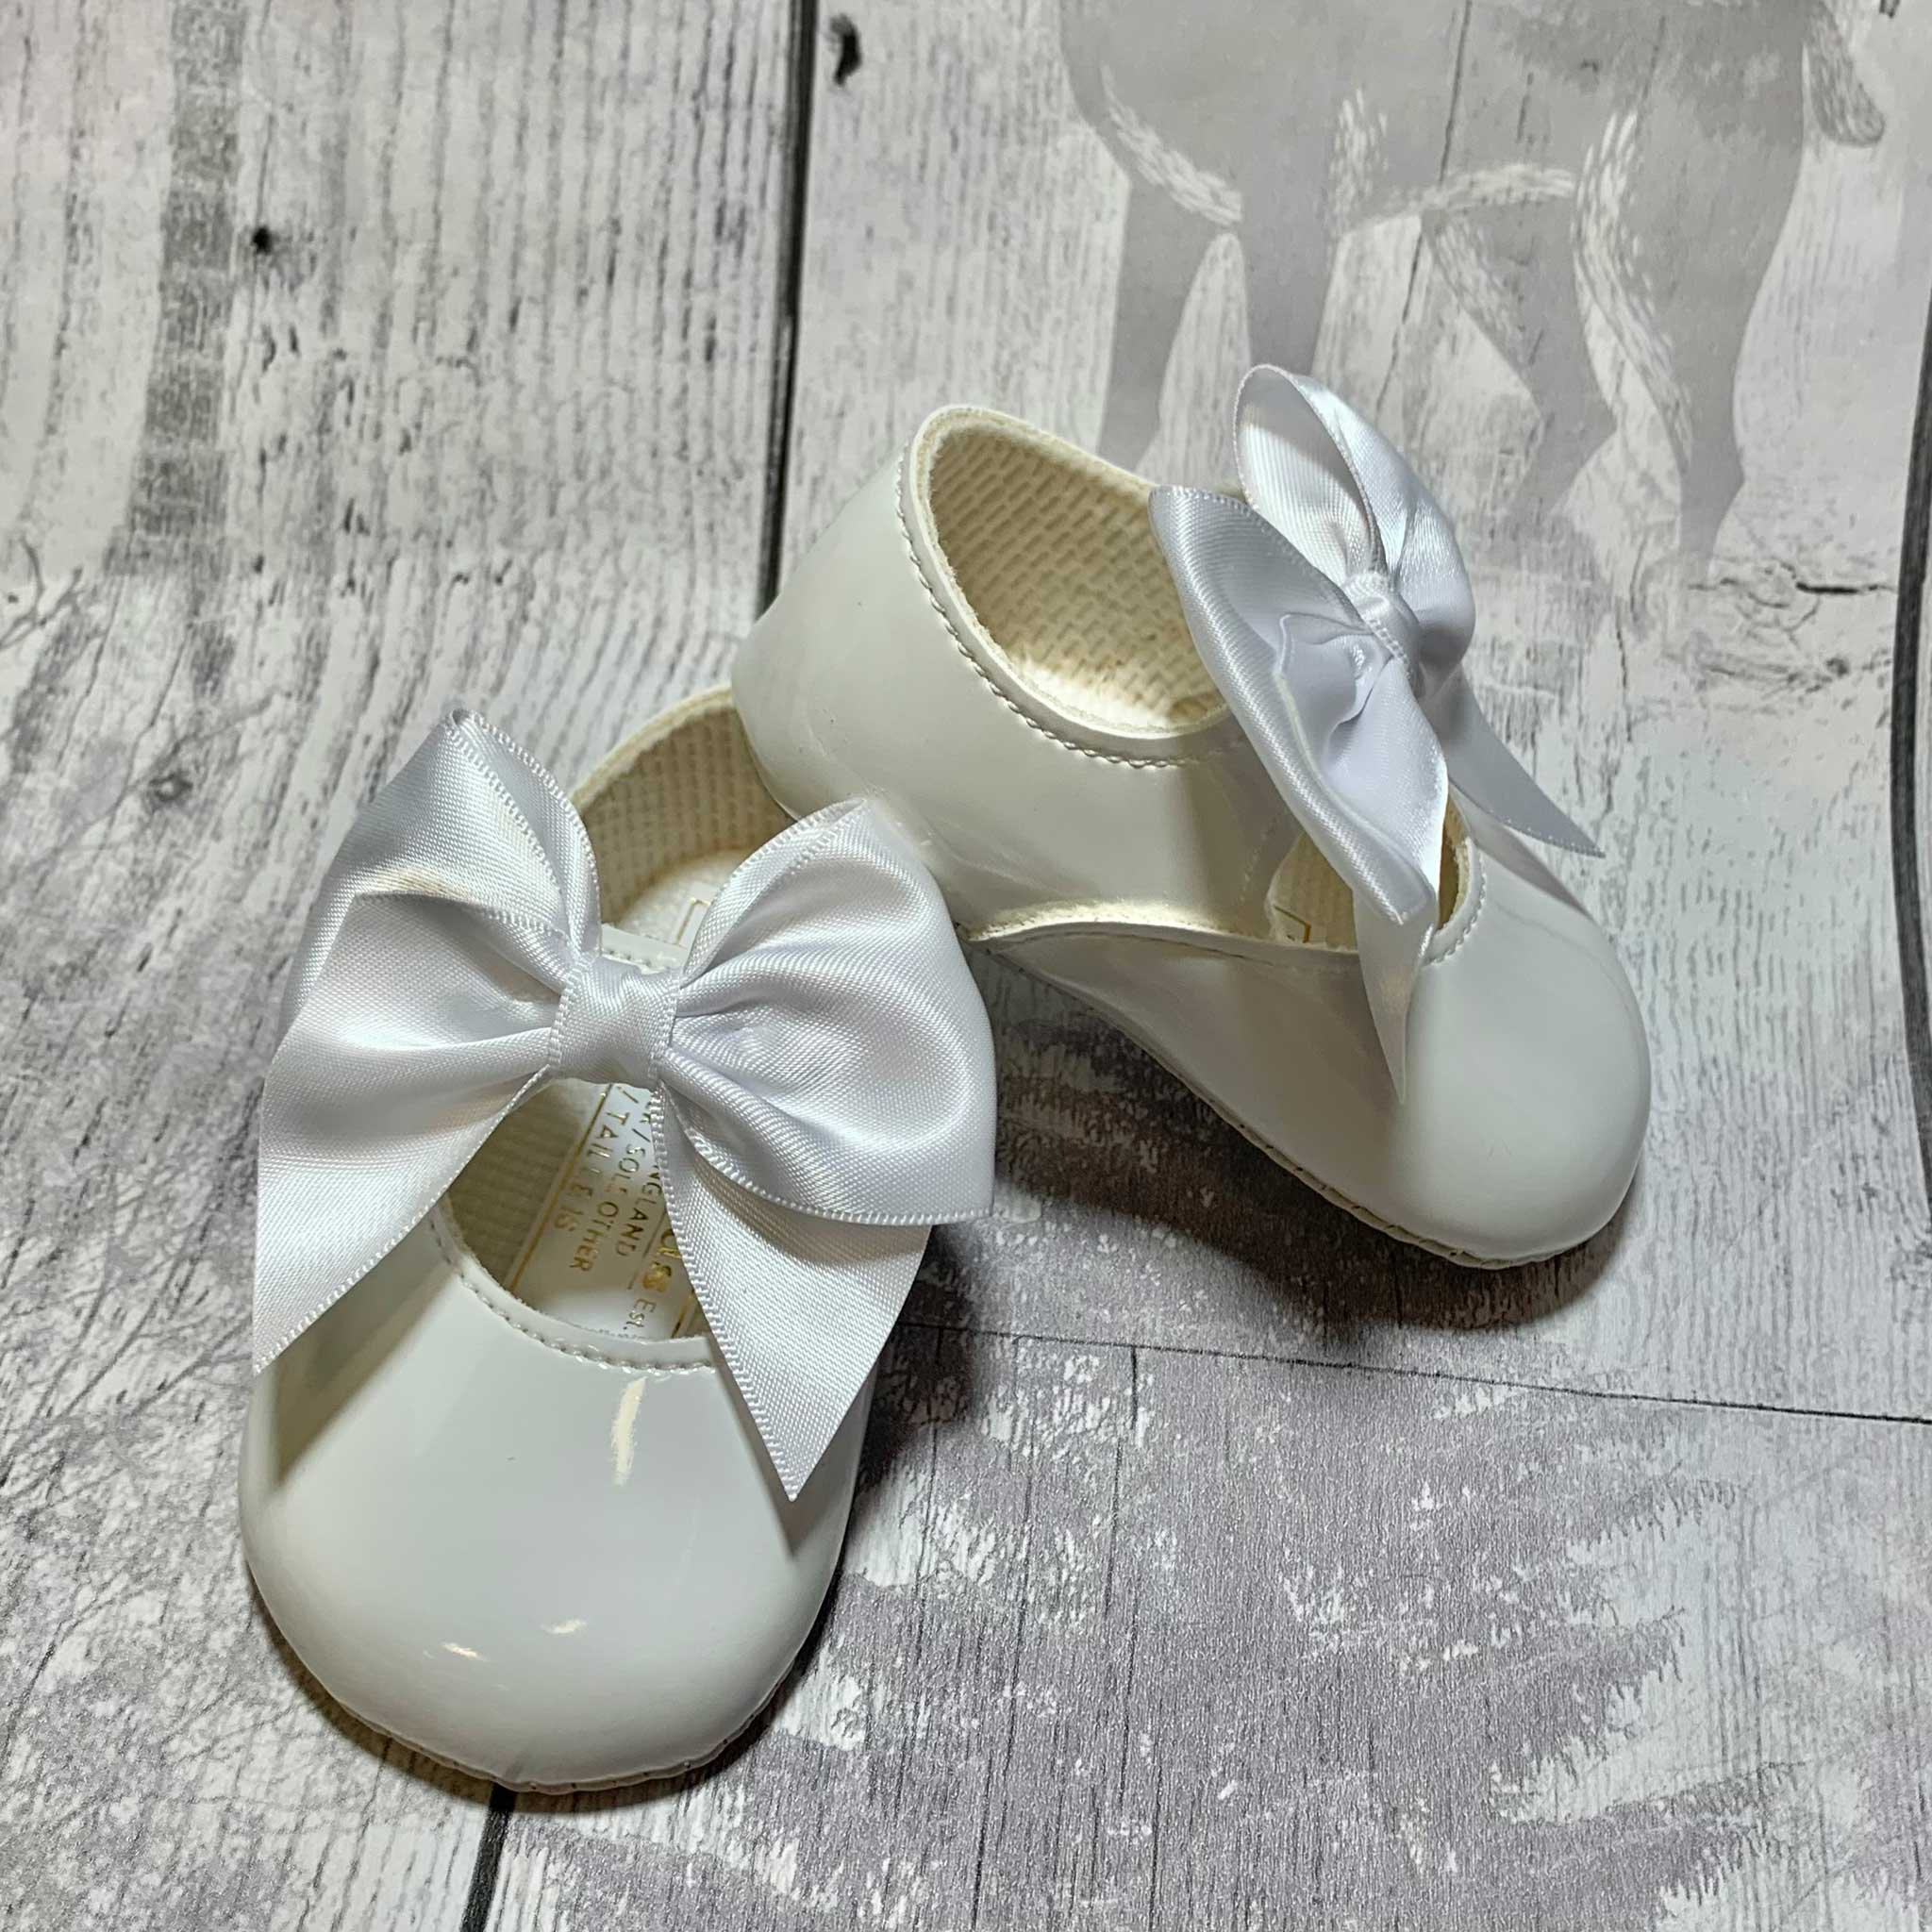 Baby Girl Shoes with Satin Ribbon Bow - White